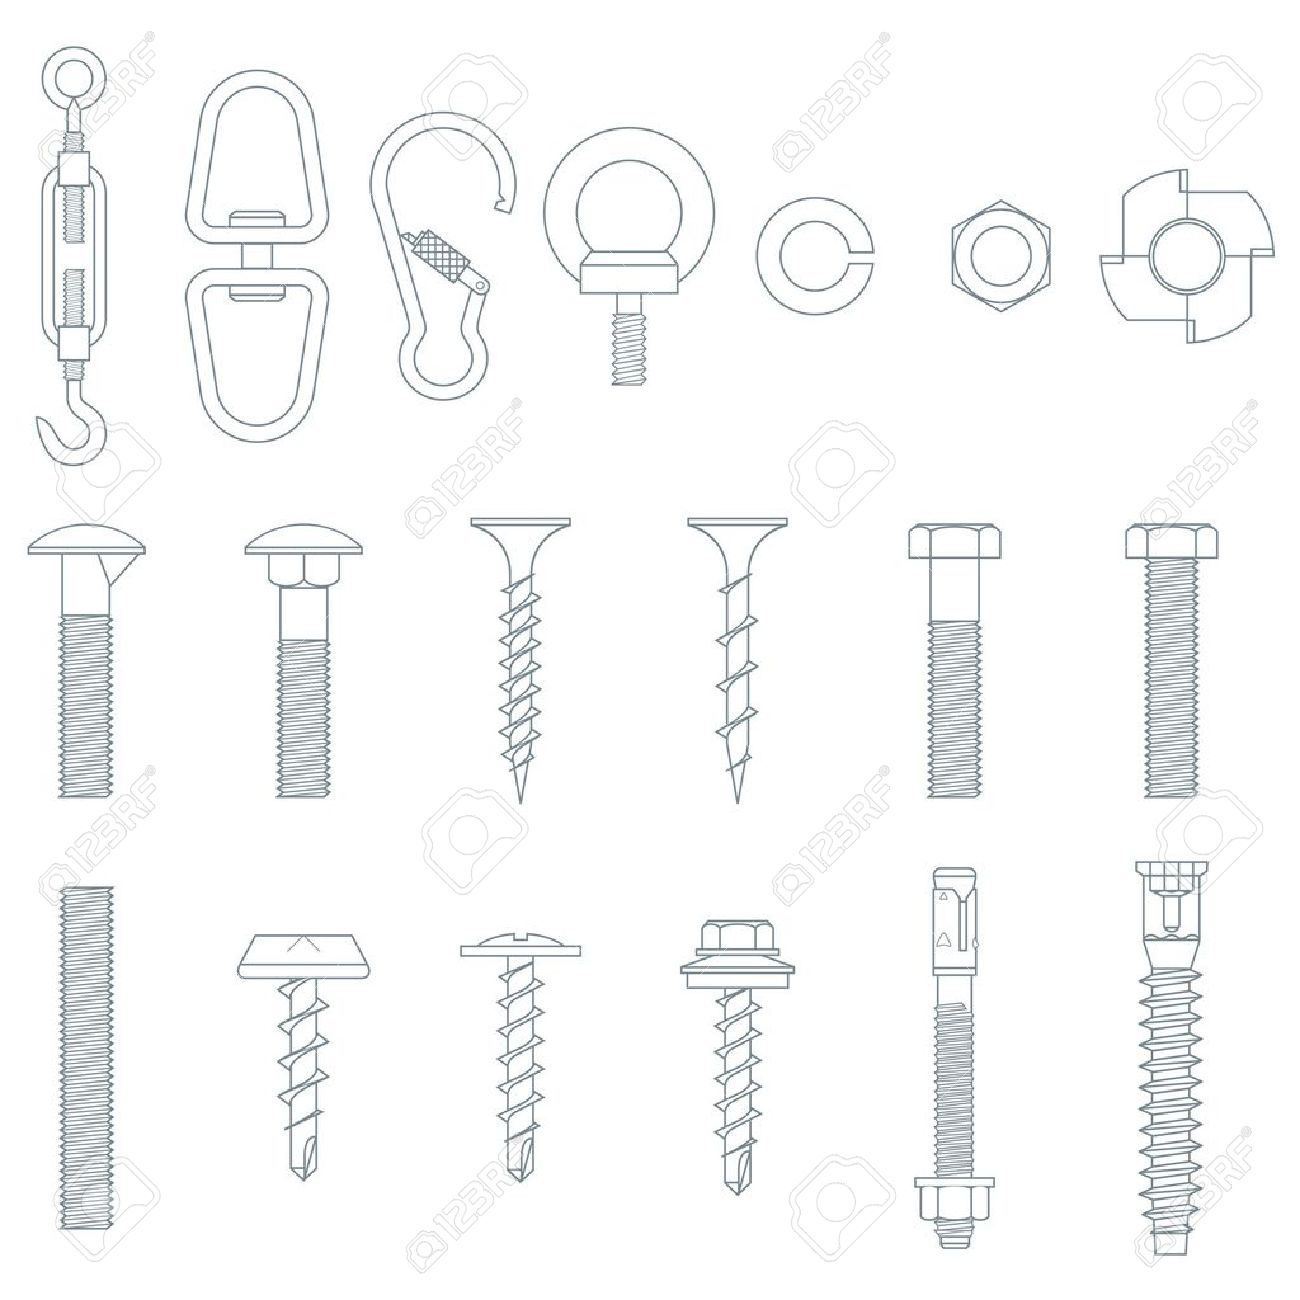 Screws clipart outline Bolt clipart collection Screw bolts